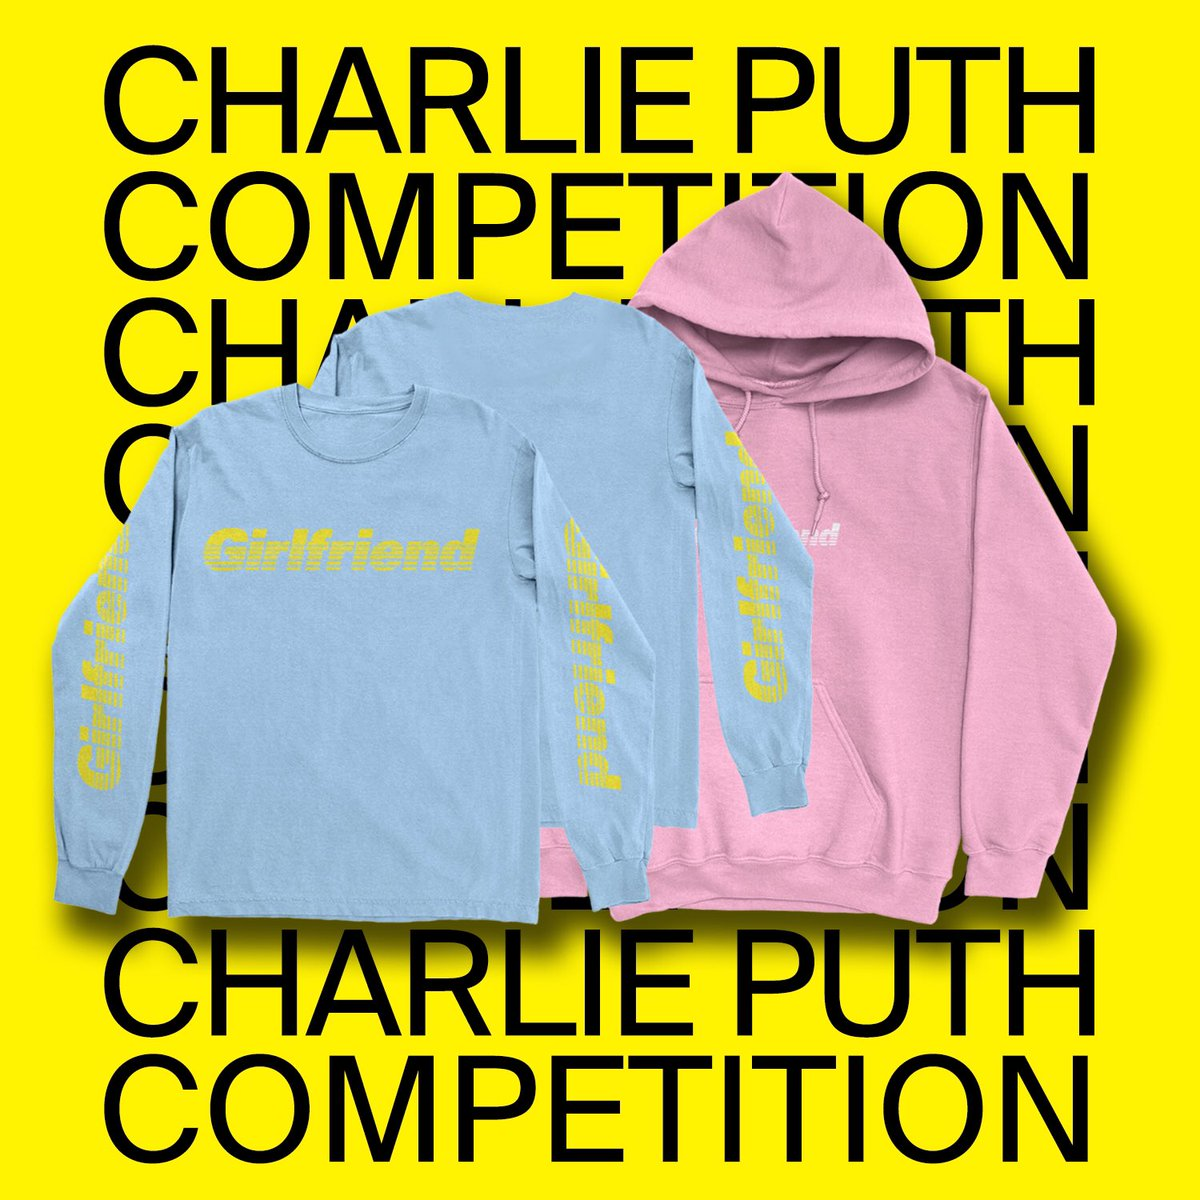 ⚡️⚡️Competition Time ⚡️⚡️  Fancy winning some @charlieputh merch!?  Find out more here ➡️ https://t.co/kzuhbkVTUK https://t.co/gHW02mL6CP